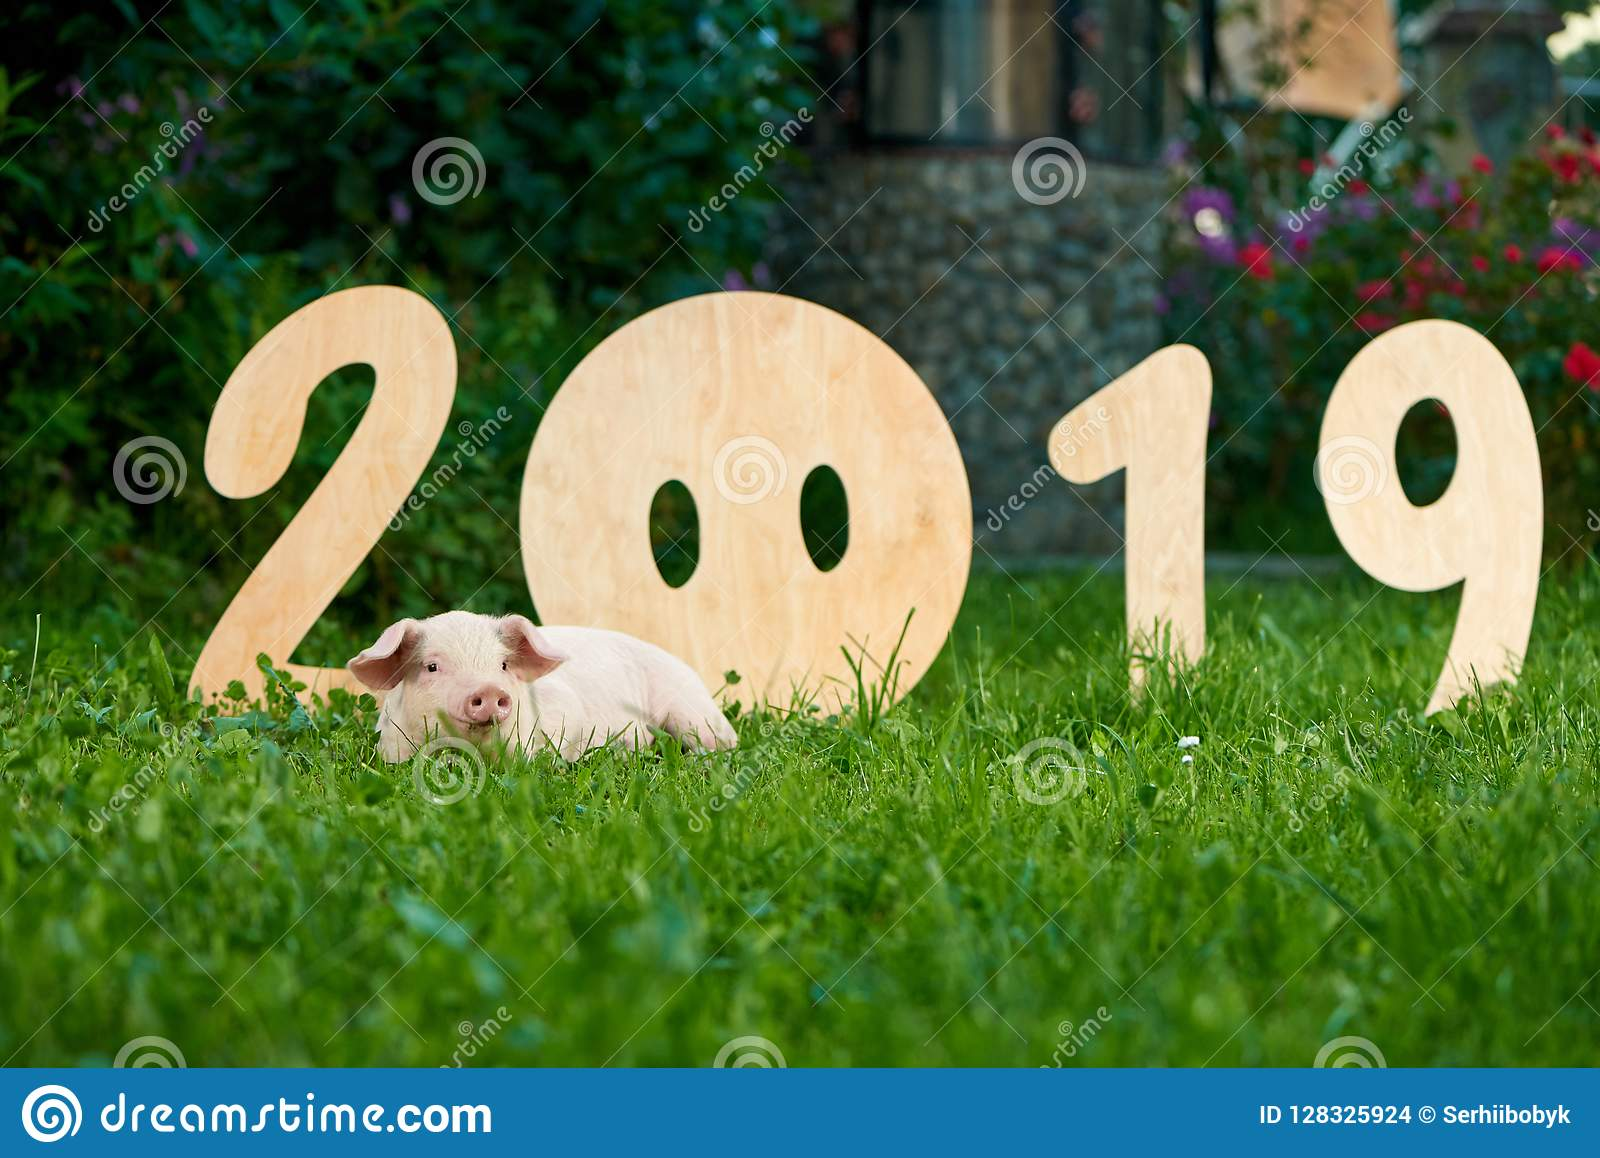 Decorative wooden numerals of new 2019 year against cute piggy on green grass.